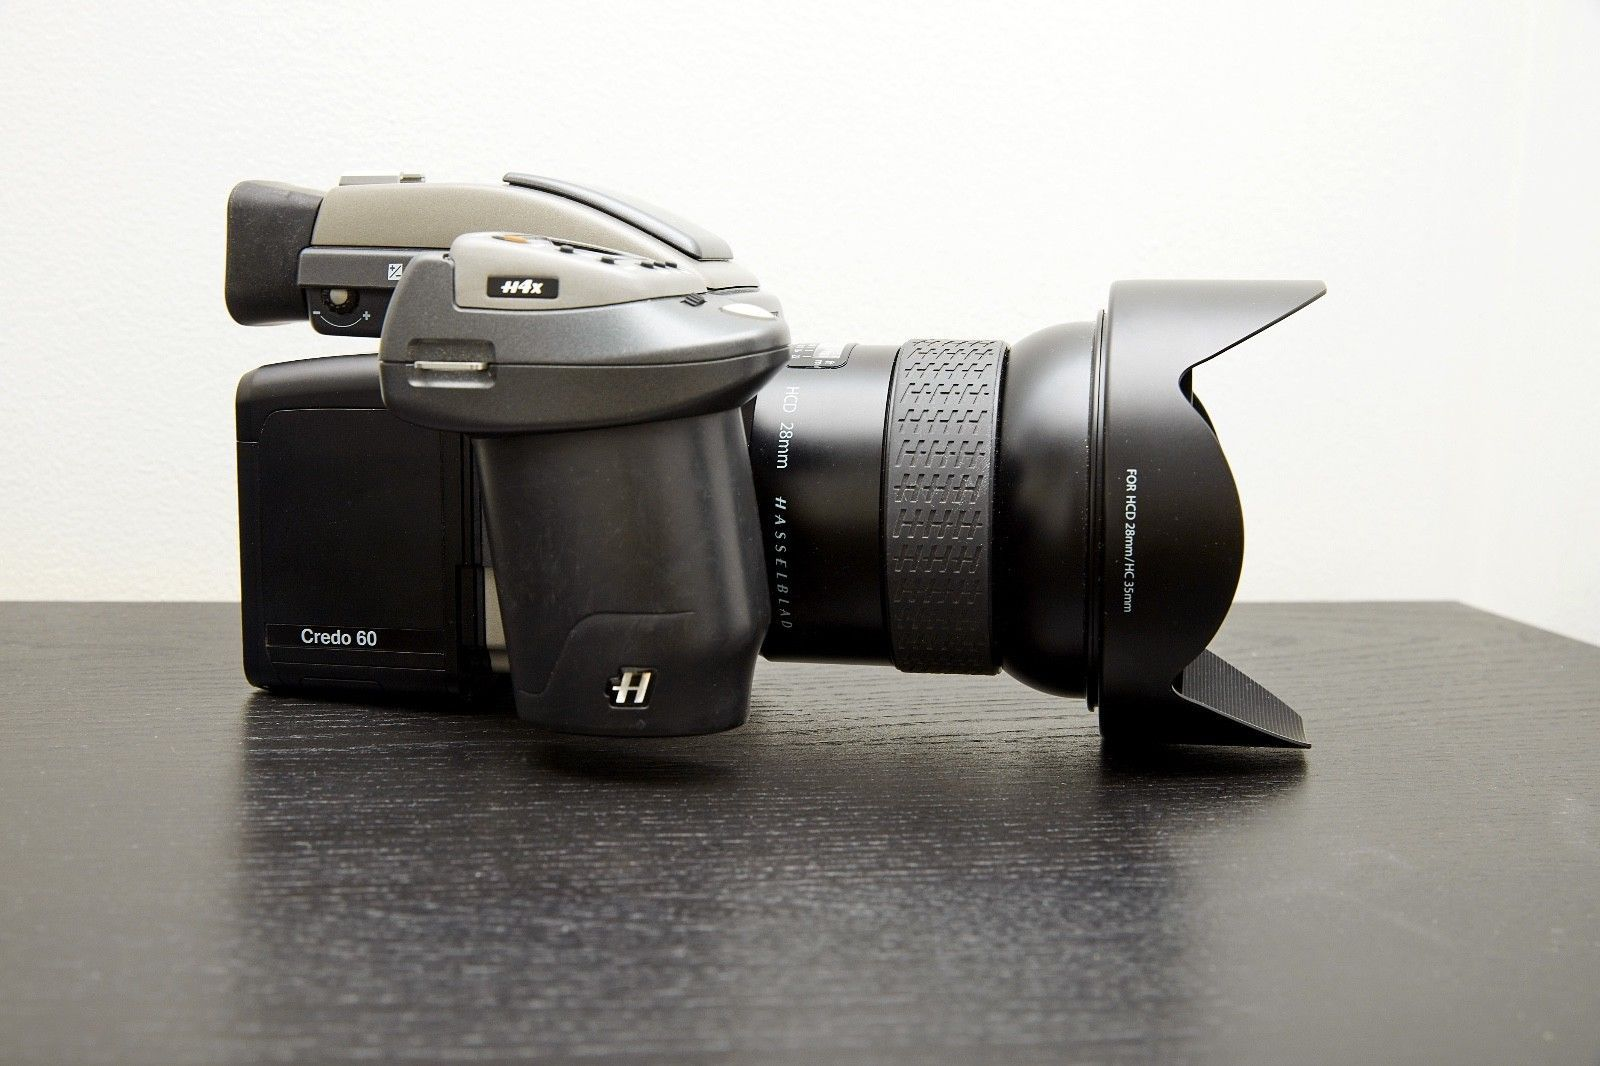 Hasselblad H4X Camera 60 MP Digital Back HCD 28mm Lens Free Shipping